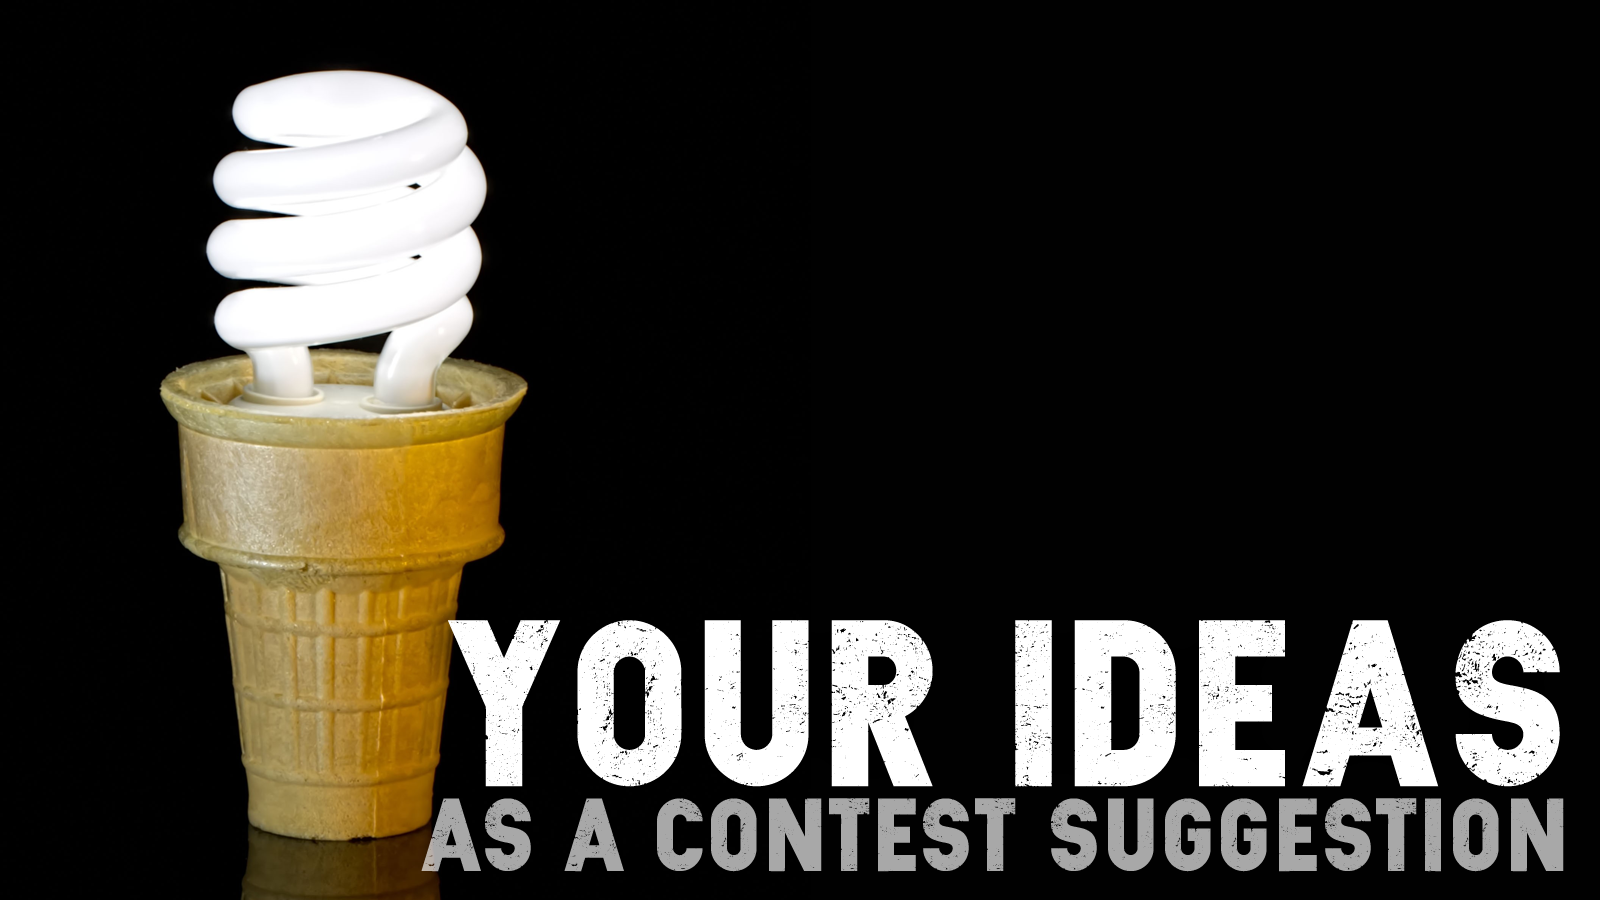 Suggest your contest ideas